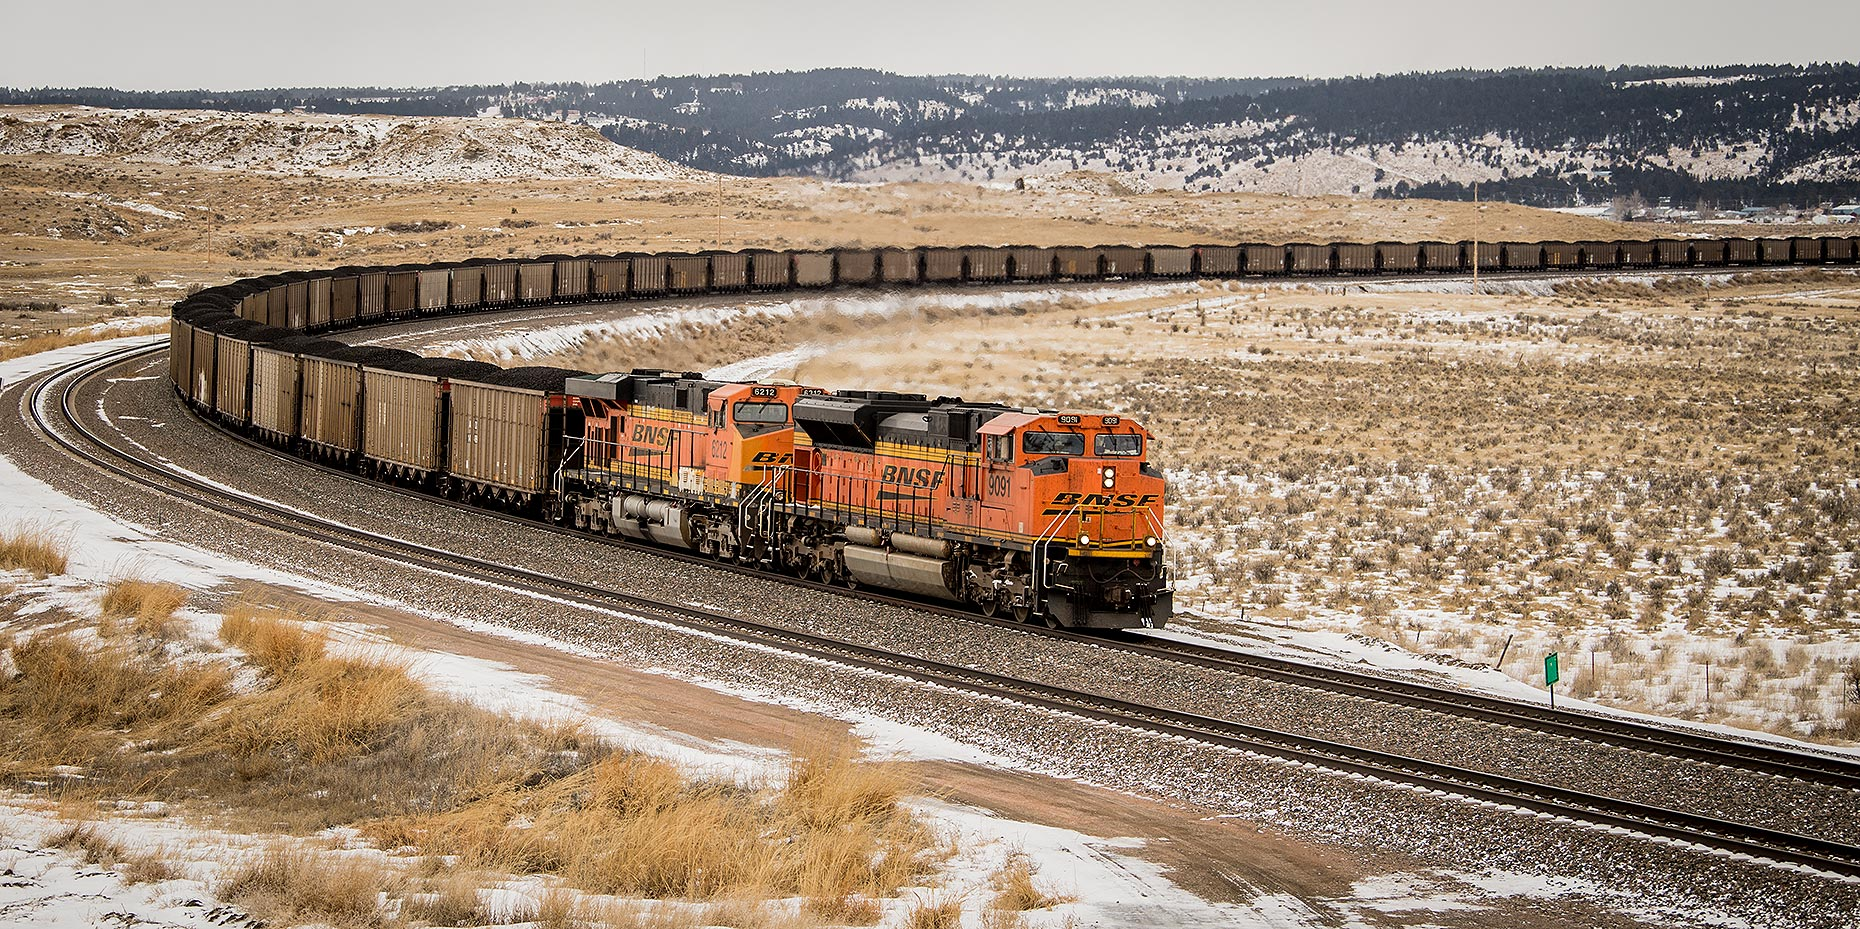 Train in Wyoming in Winter